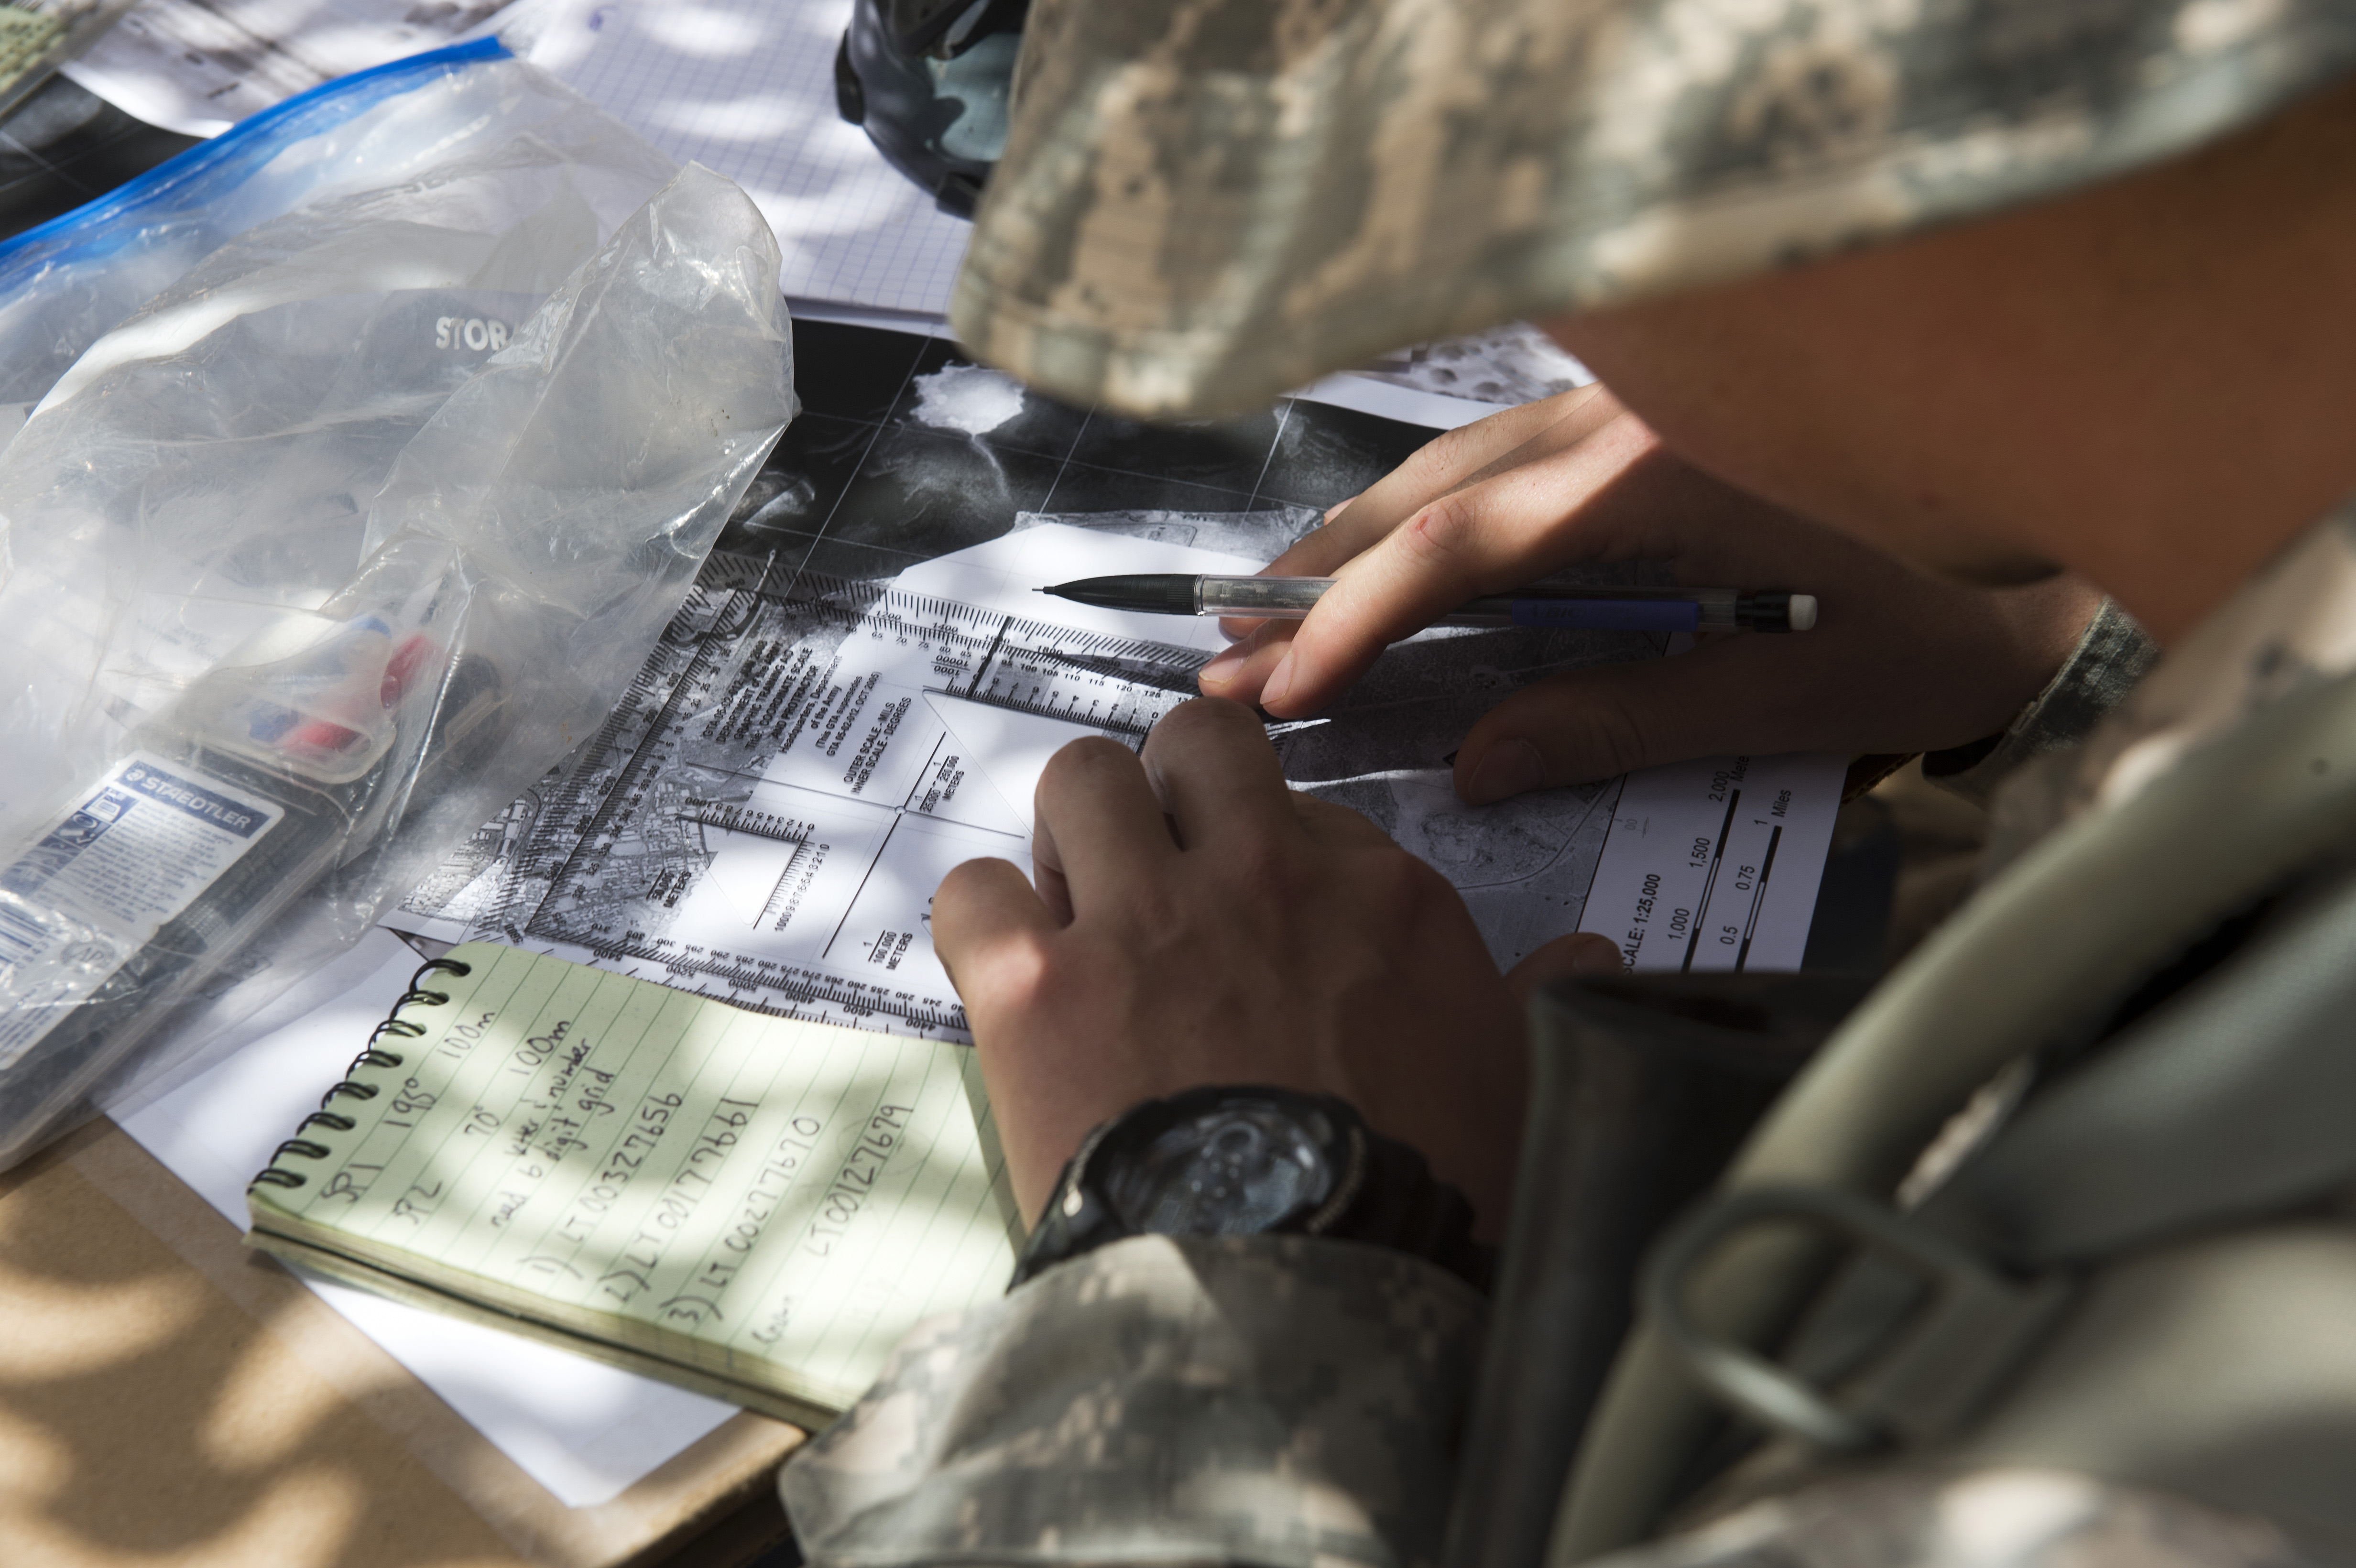 A soldier from the U.S. Army's 1st Battalion, 77th Armor Regiment, plots grid points on a field map during land navigation training on Camp Lemonnier, Djibouti, April 15, 2015. The training was part of the 1/77 AR Rgt. Expert Infantry Badge field training exercises in preparation for the EIB assessment. (U.S. Air Force photo by Staff Sgt. Nathan Maysonet)